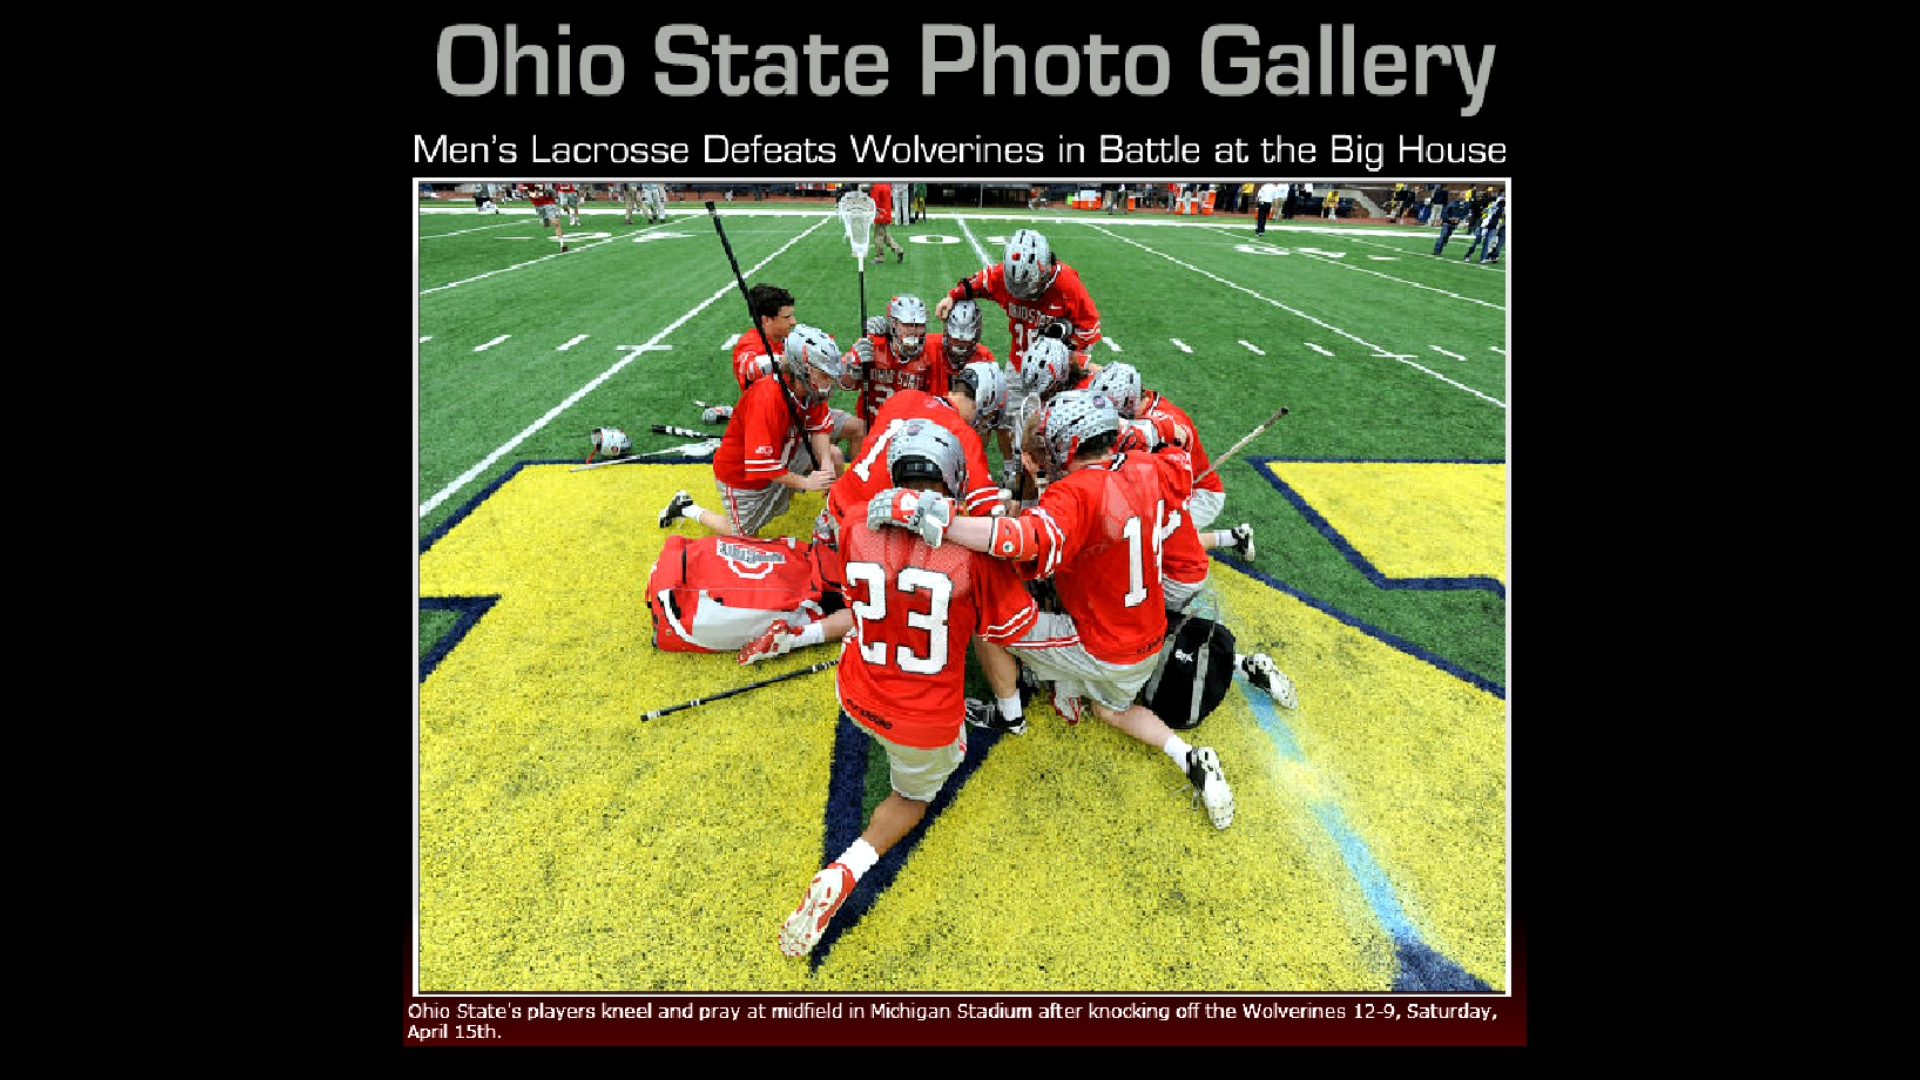 Ohio State Buckeyes Images 2012 MENS LACROSSE OSU DEFEATS TSUN HD Wallpaper And Background Photos